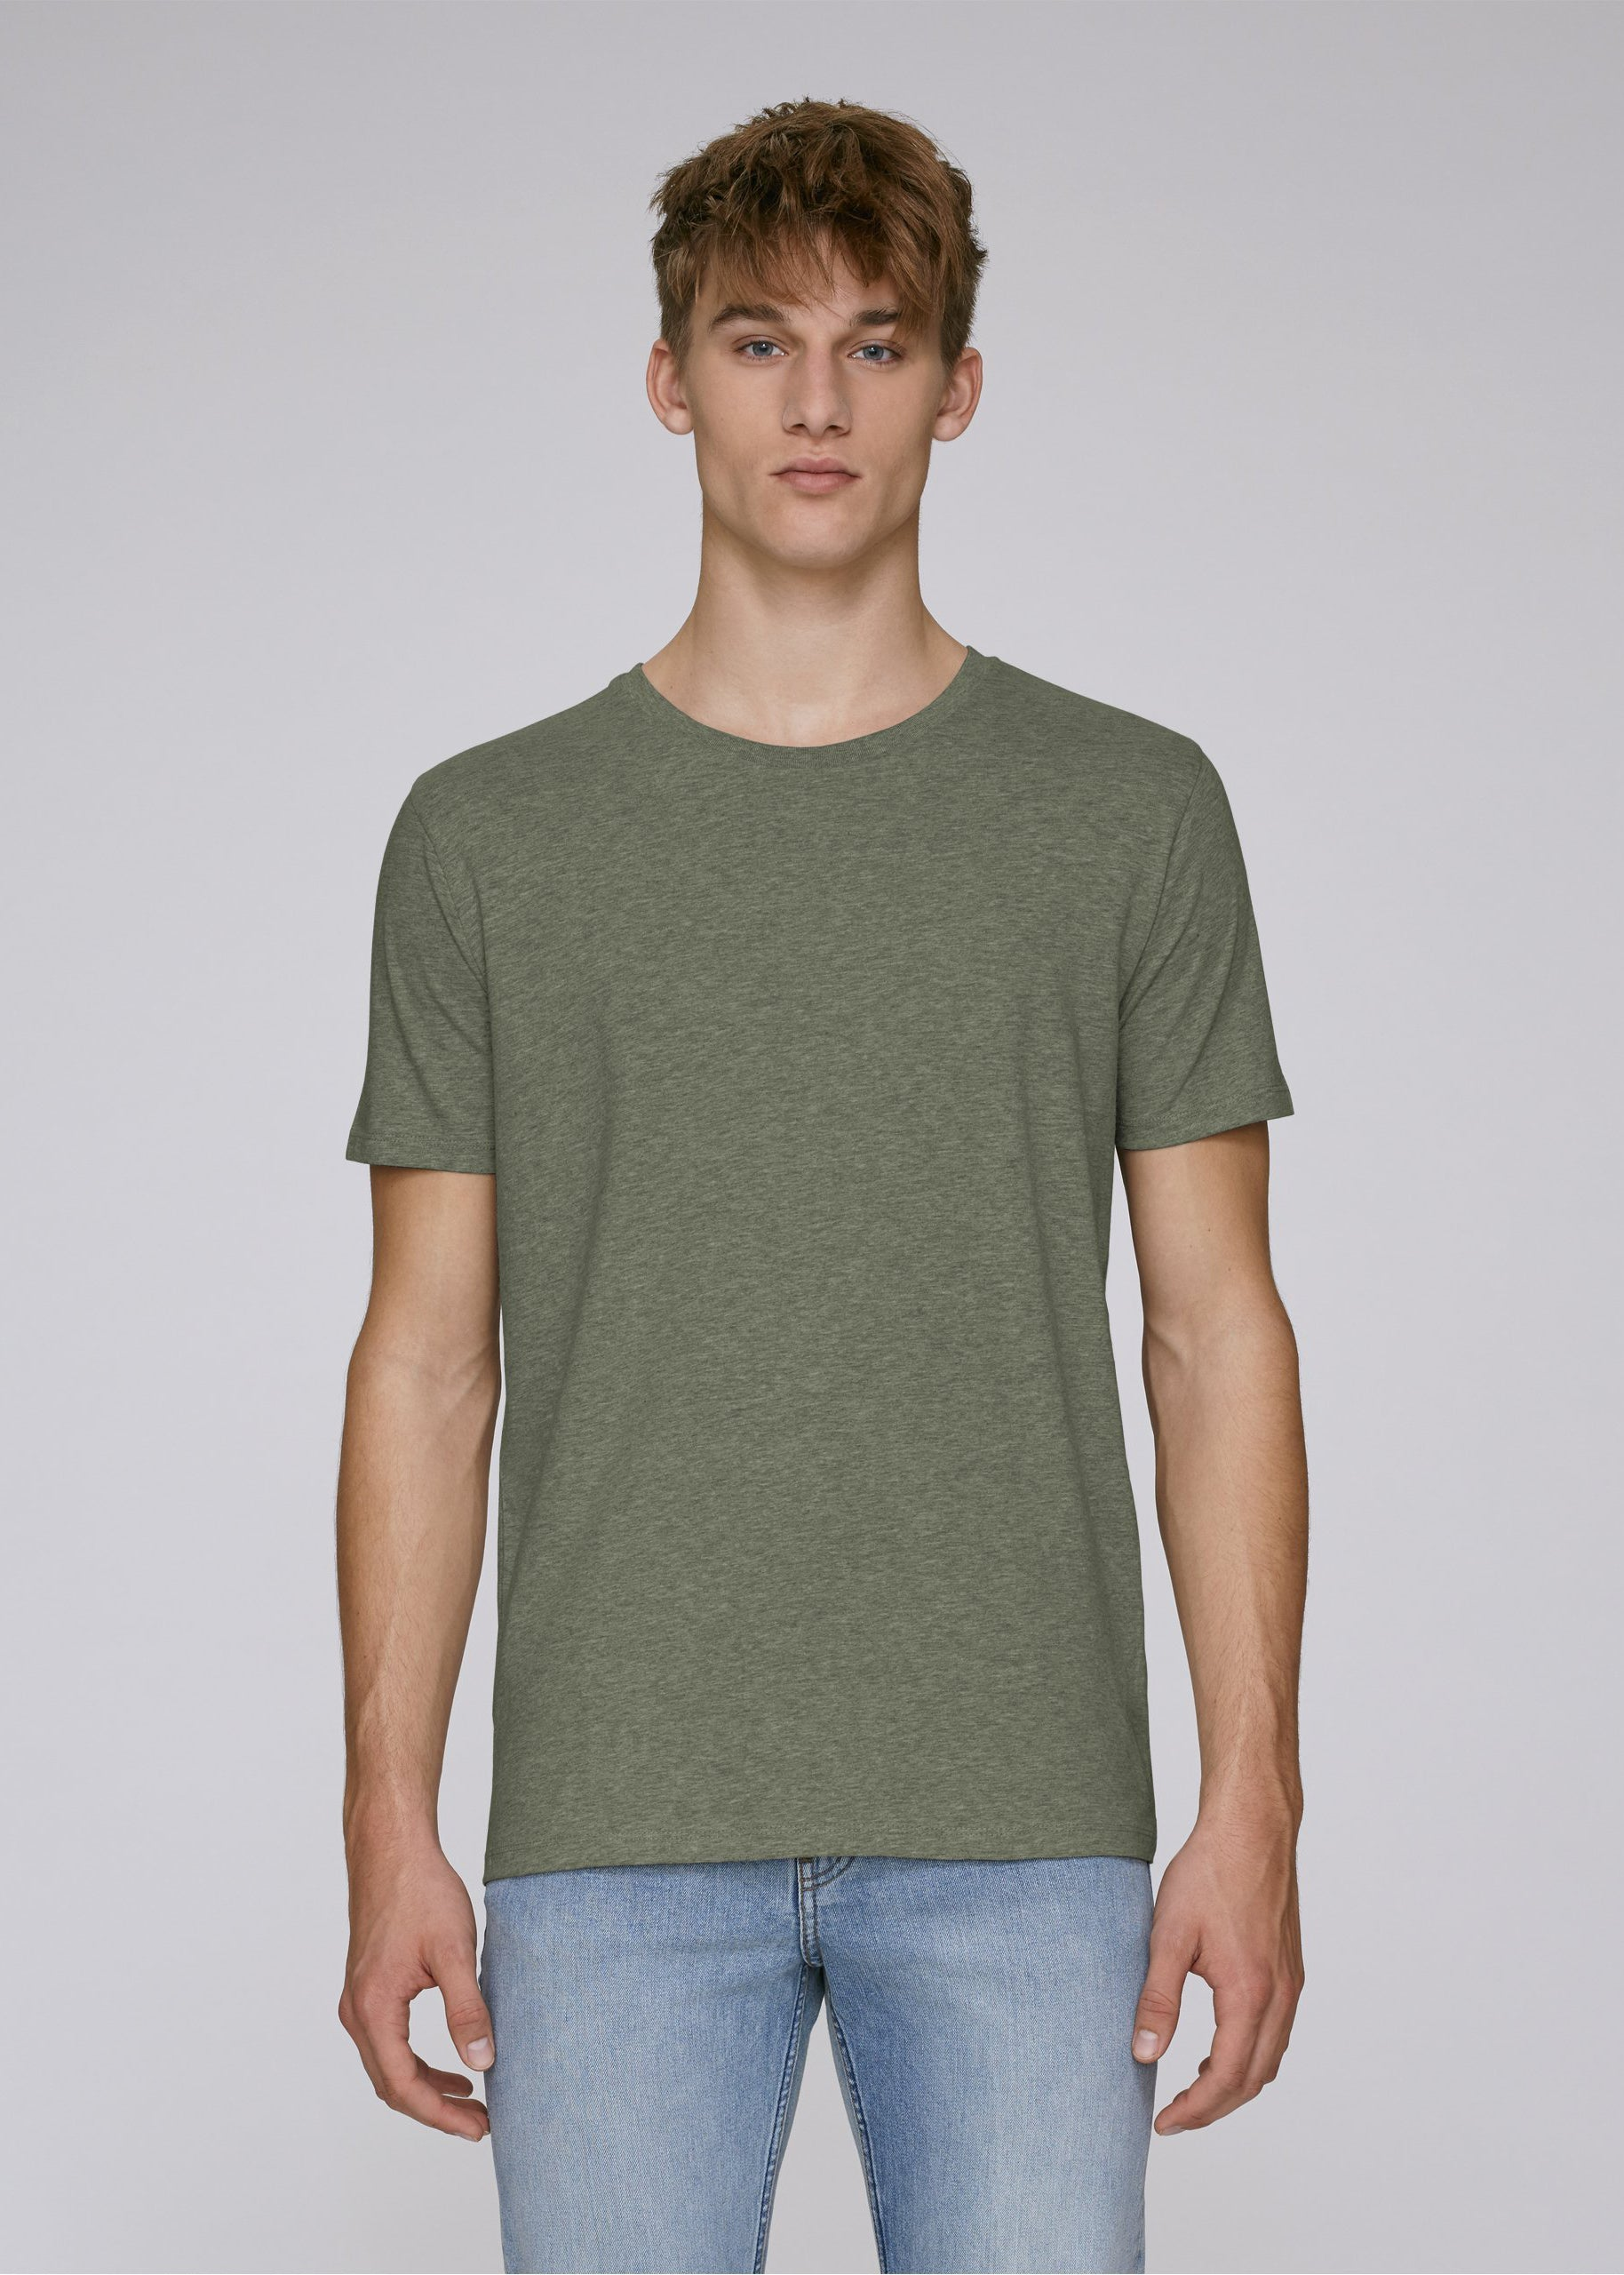 He Leads - Mid Heather Khaki-T-shirt-Sancho's Dress